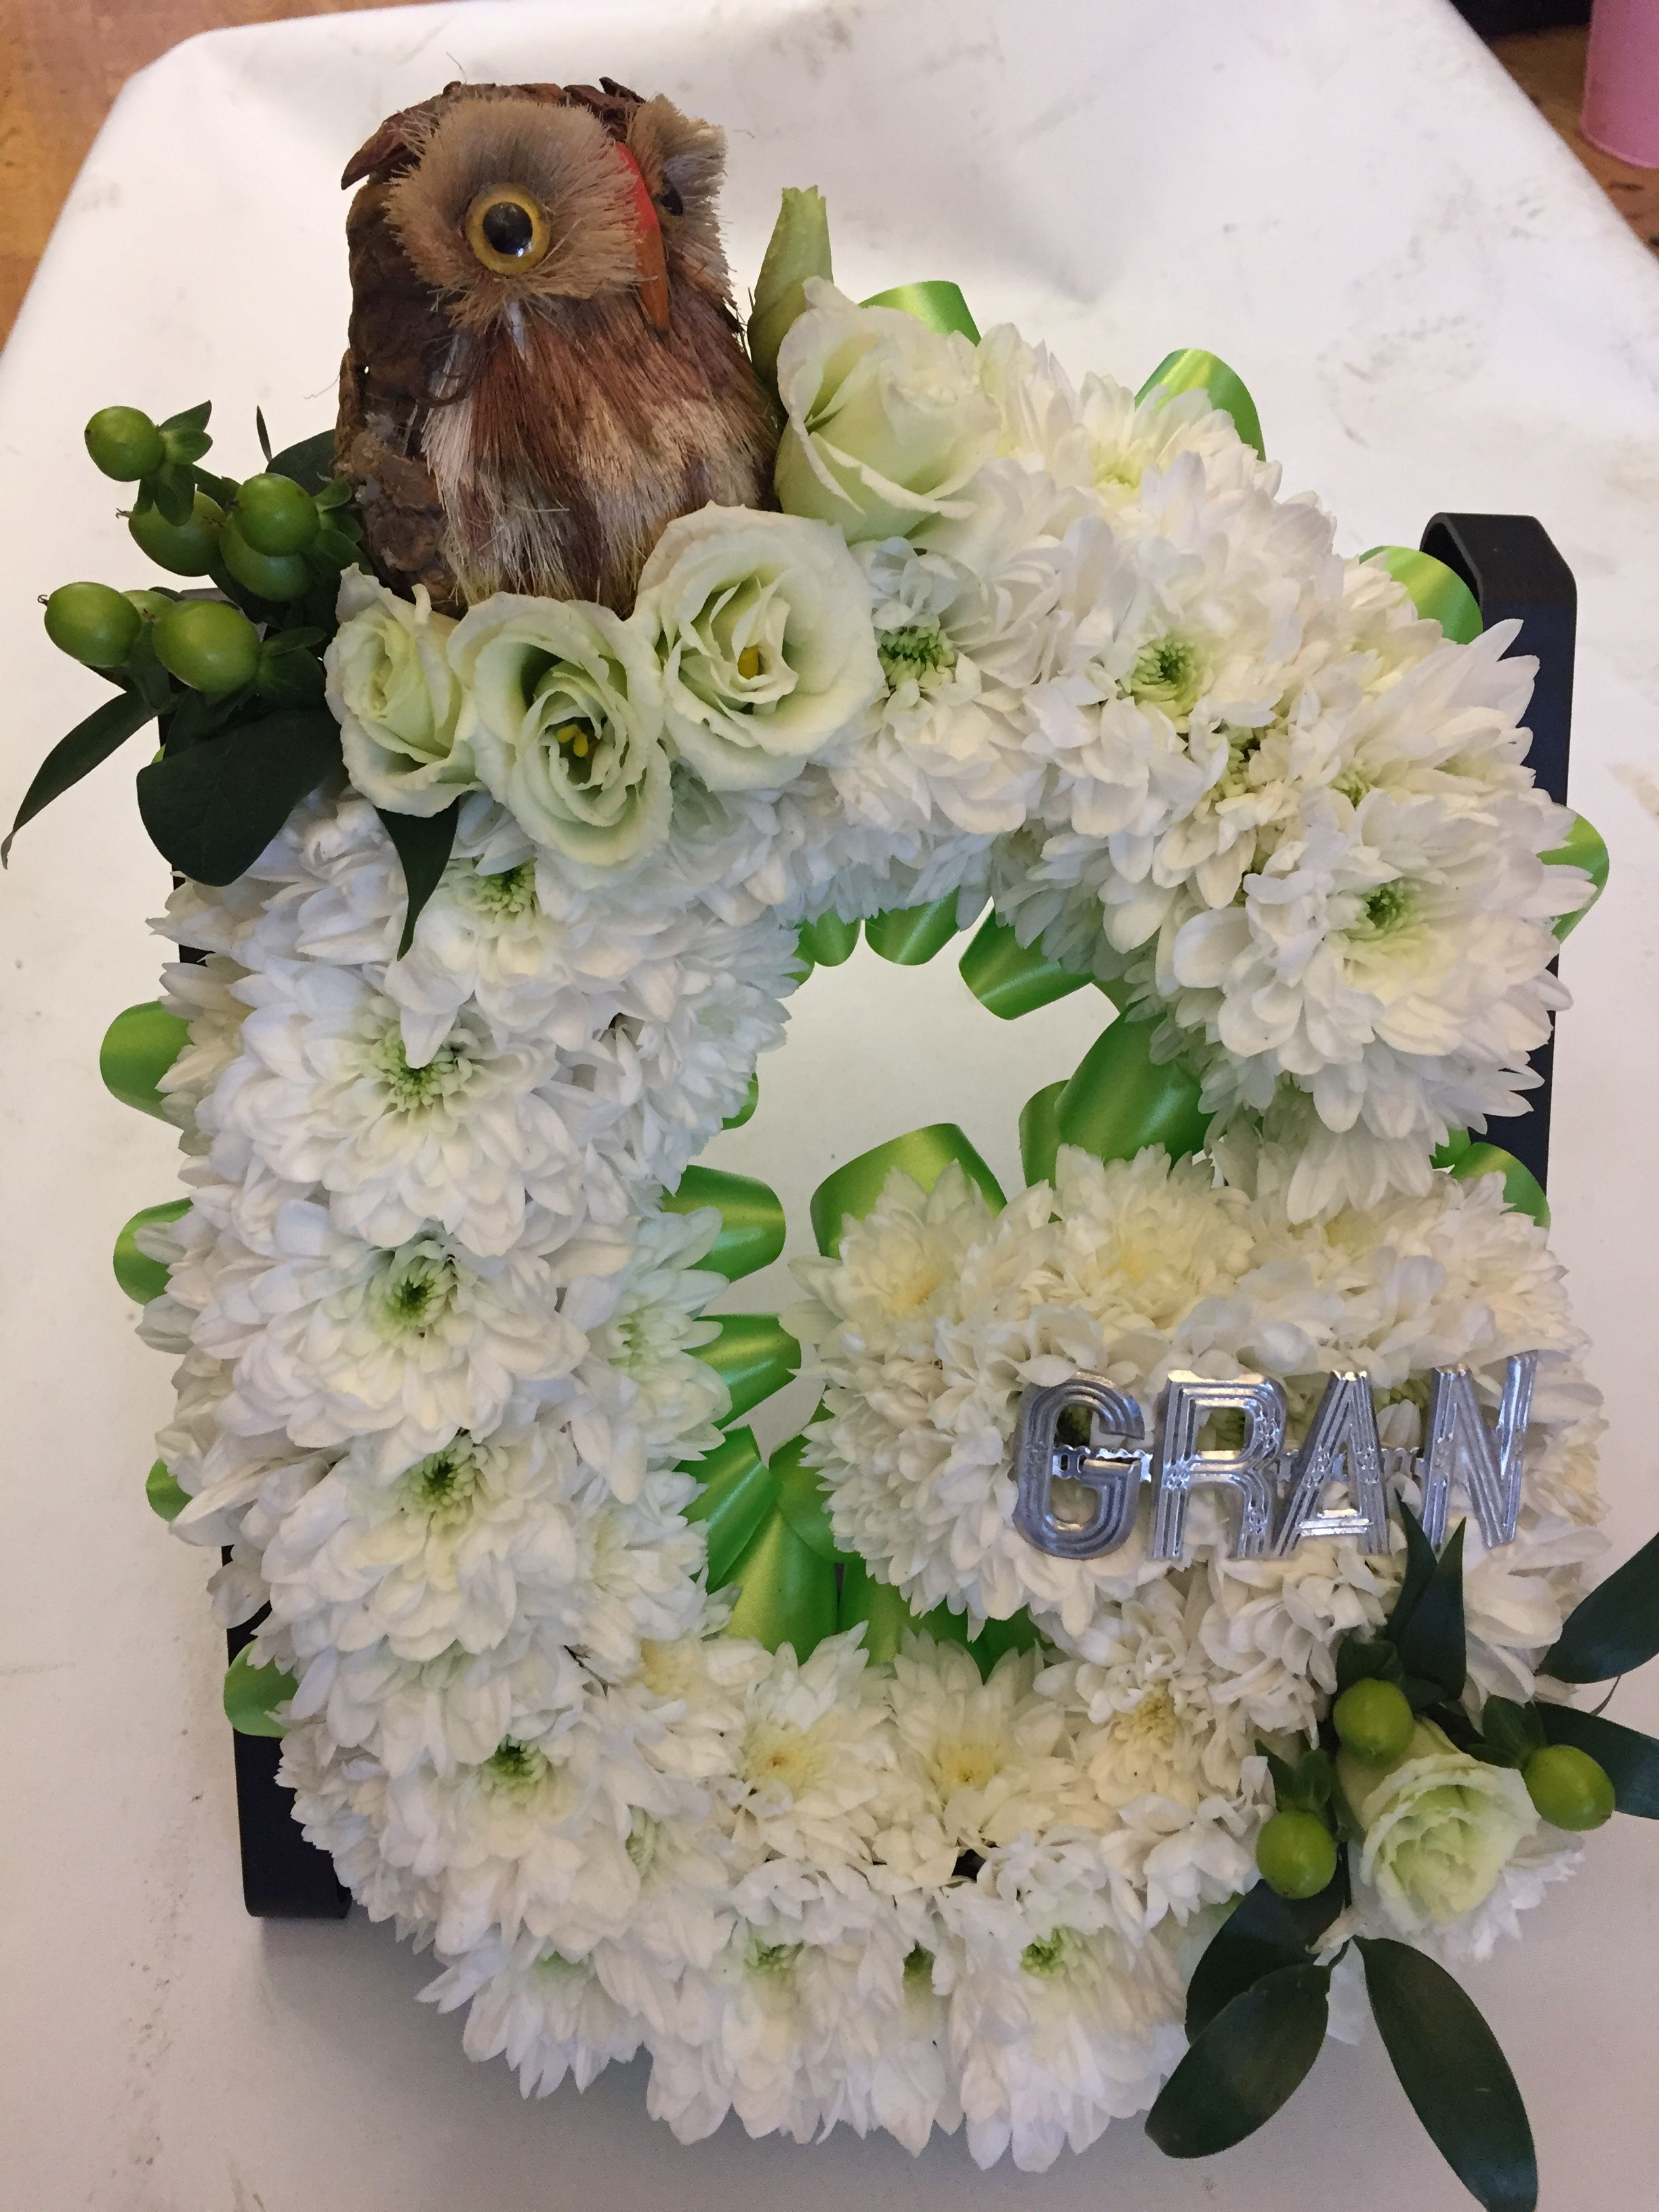 Letter g for gran as funeral flowers with an owl and silver letters letter g for gran as funeral flowers with an owl and silver letters izmirmasajfo Gallery